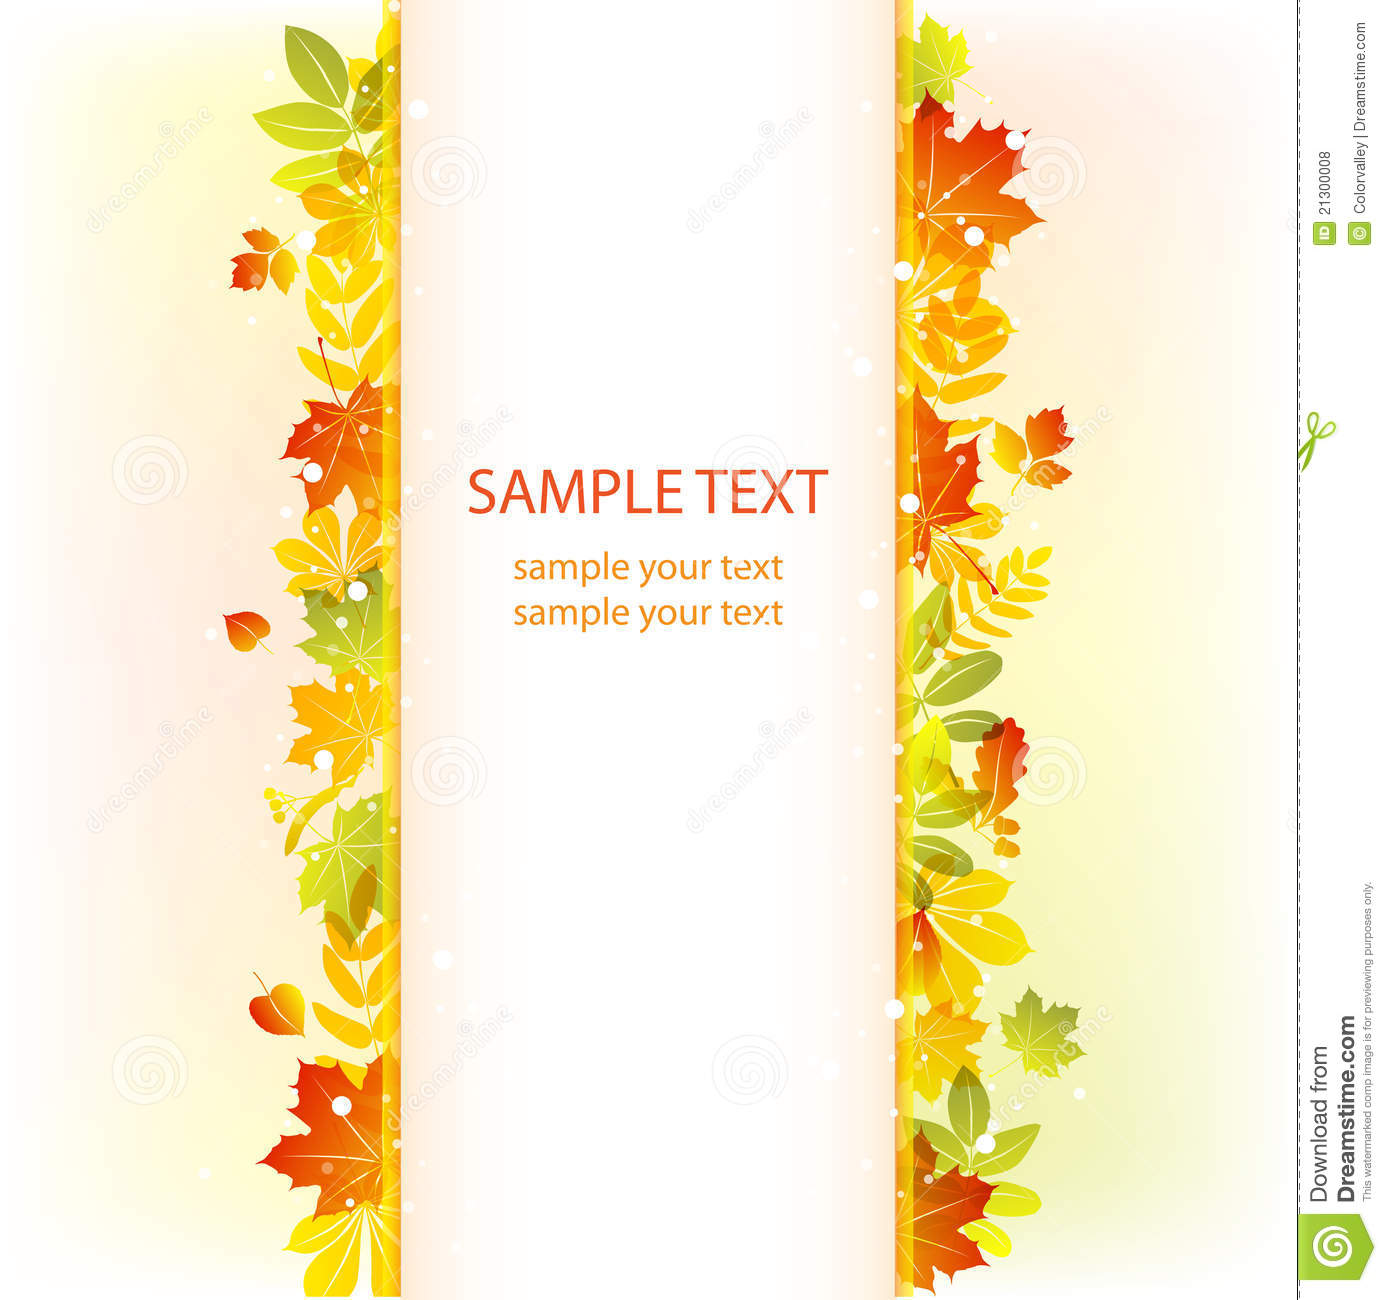 Autumn Leaves Background Vector Banner Royalty Free Stock